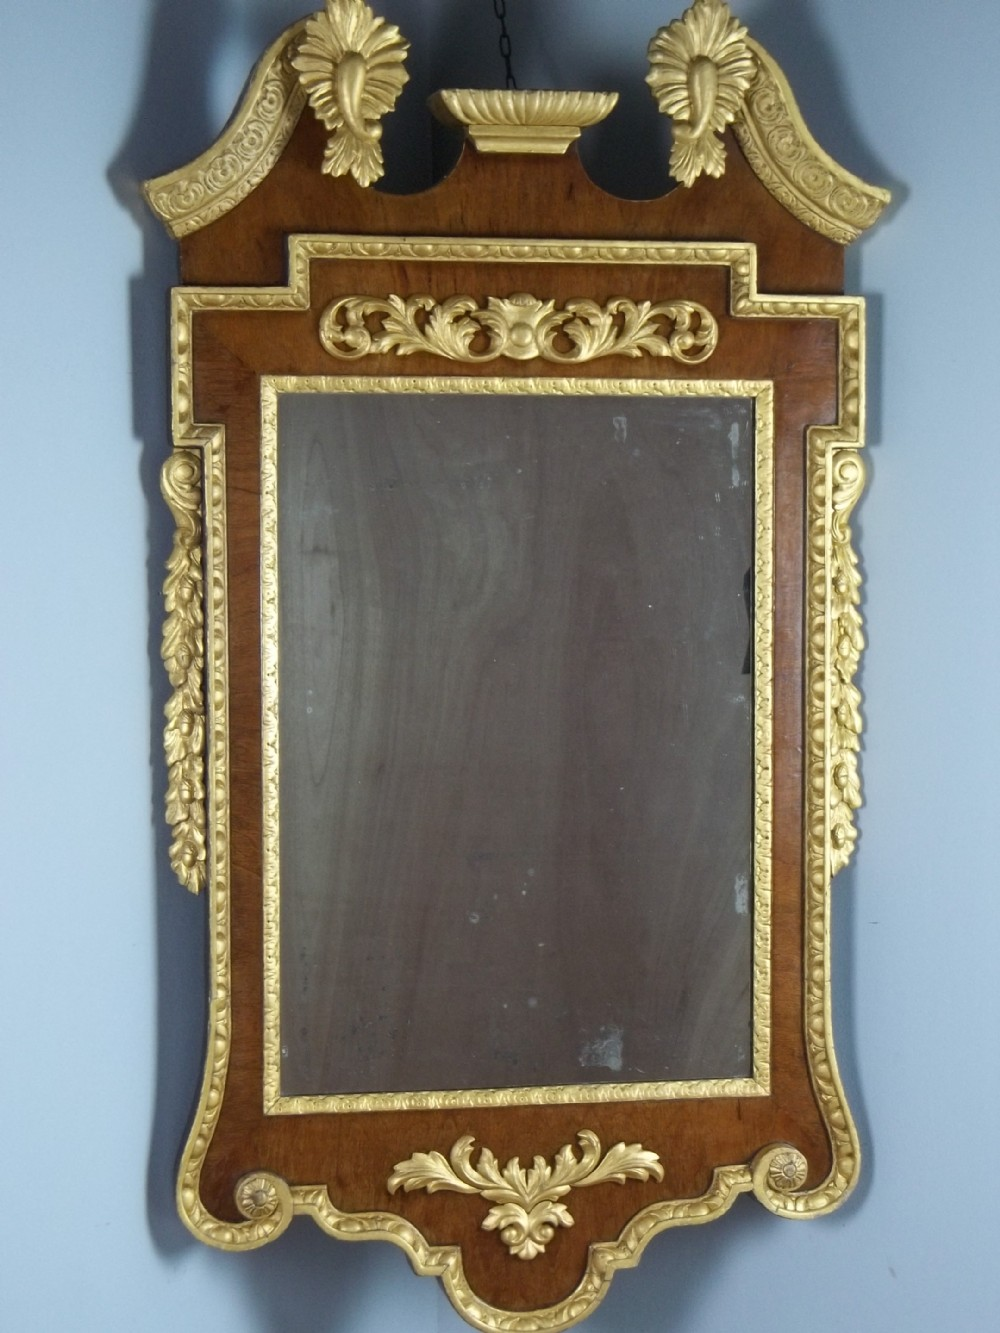 a large 18th19th century walnut and gilt wood fret wall pier console mirror of william kent design c1880